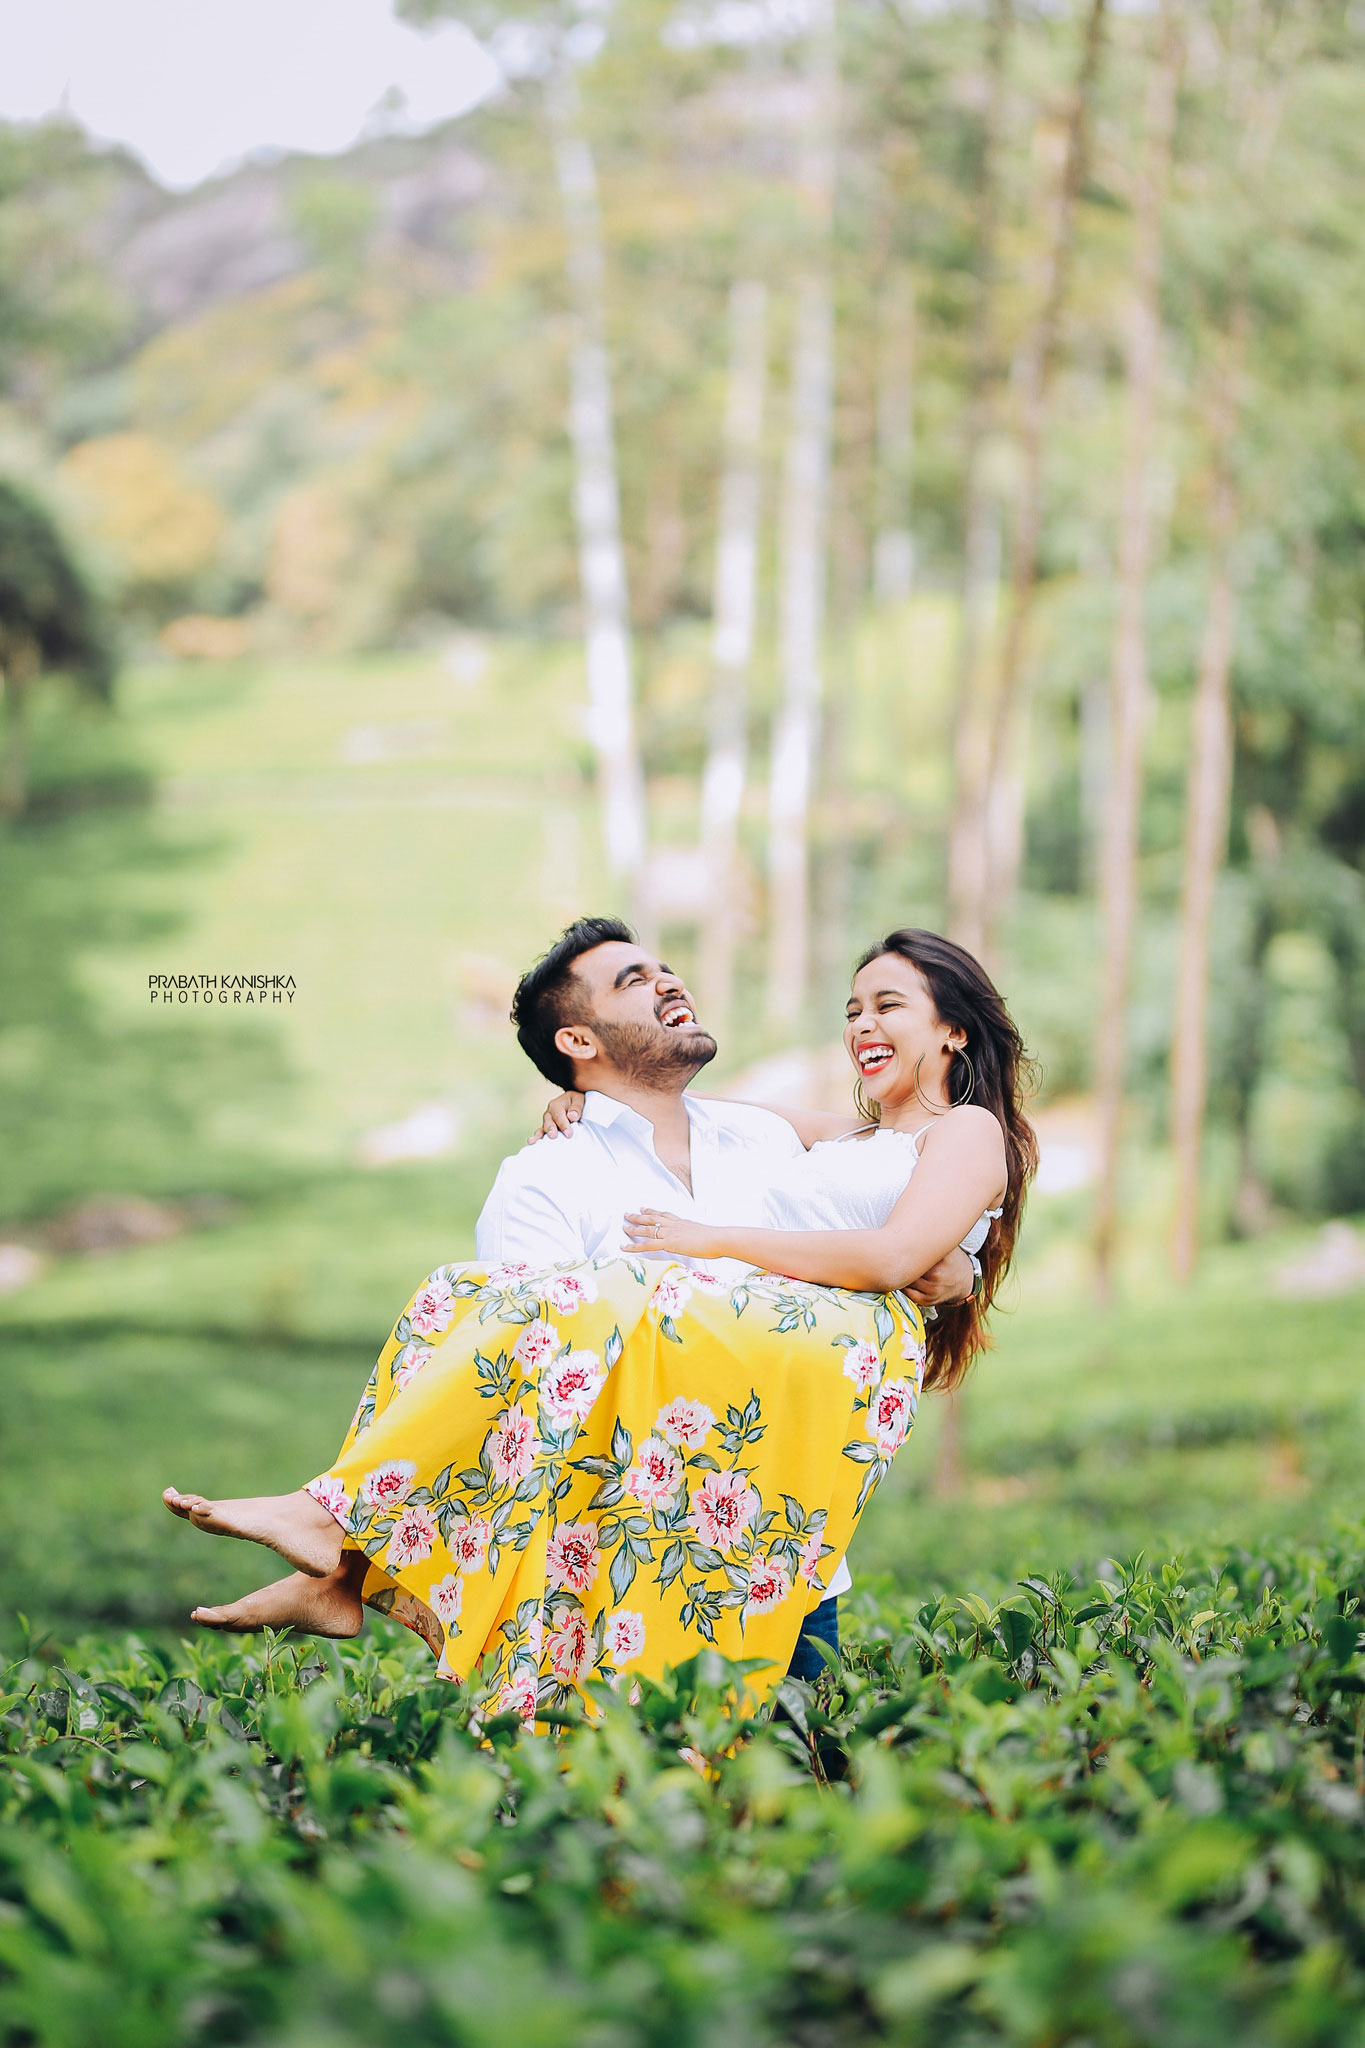 Sachini & Nipuna - Prabath Kanishka Wedding Photography